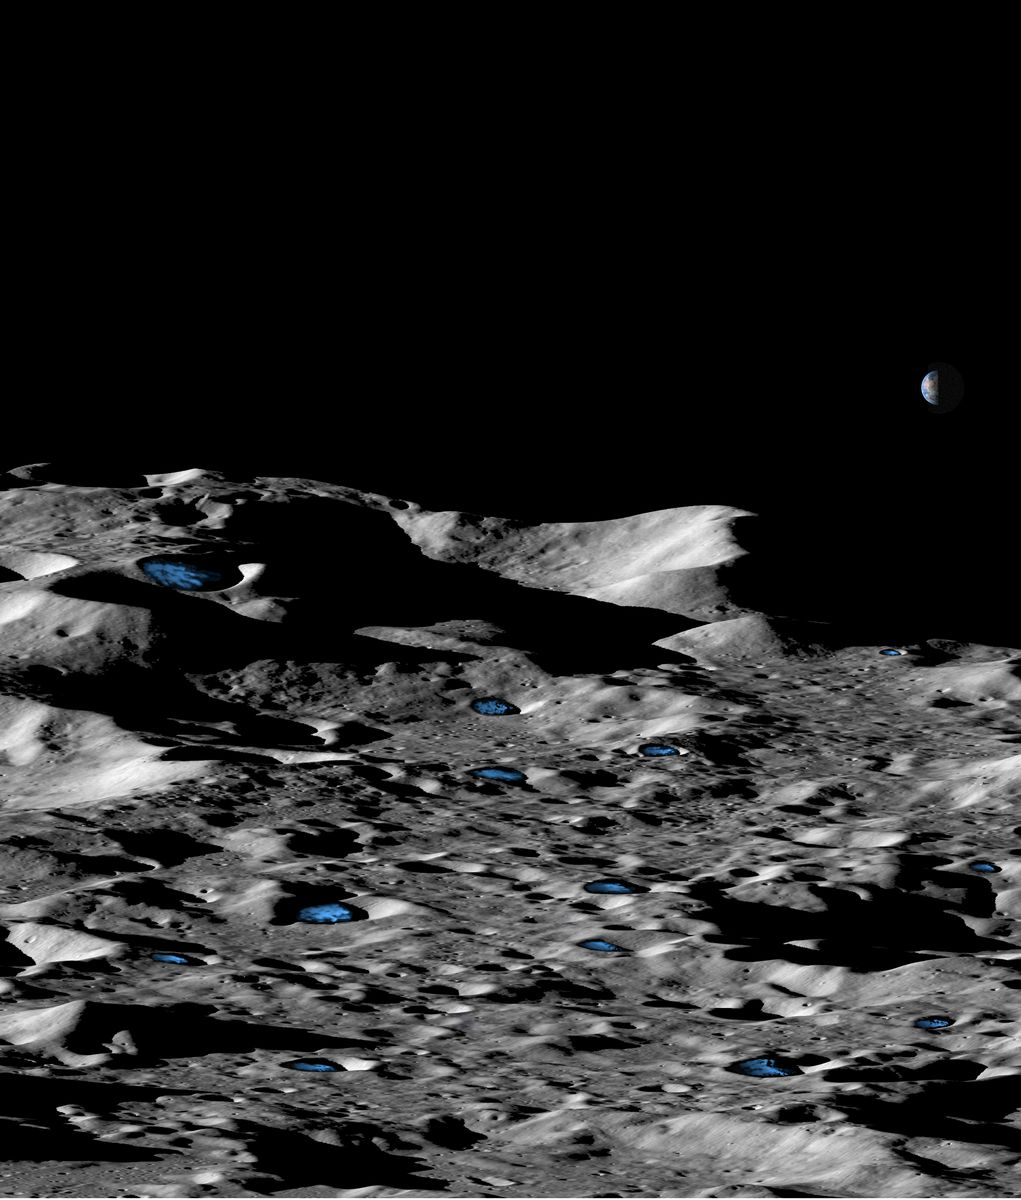 Ice deposits on the moon